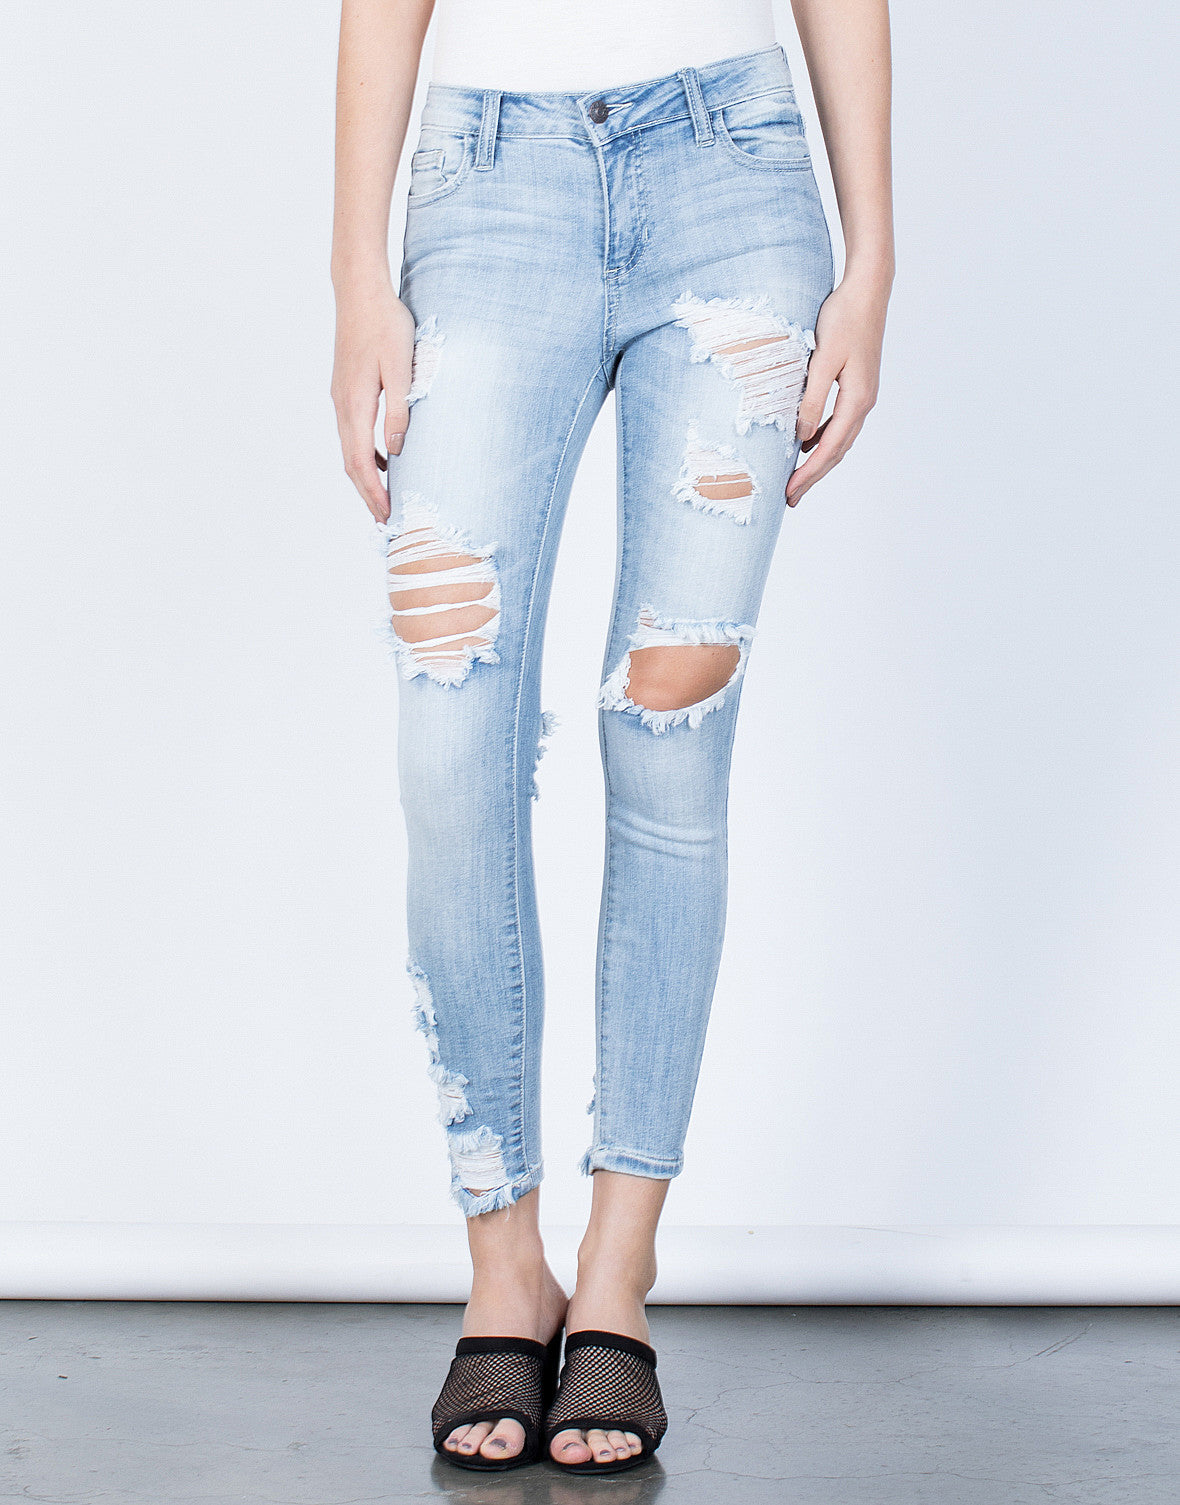 Front View of Perfect Fit Skinny Jeans